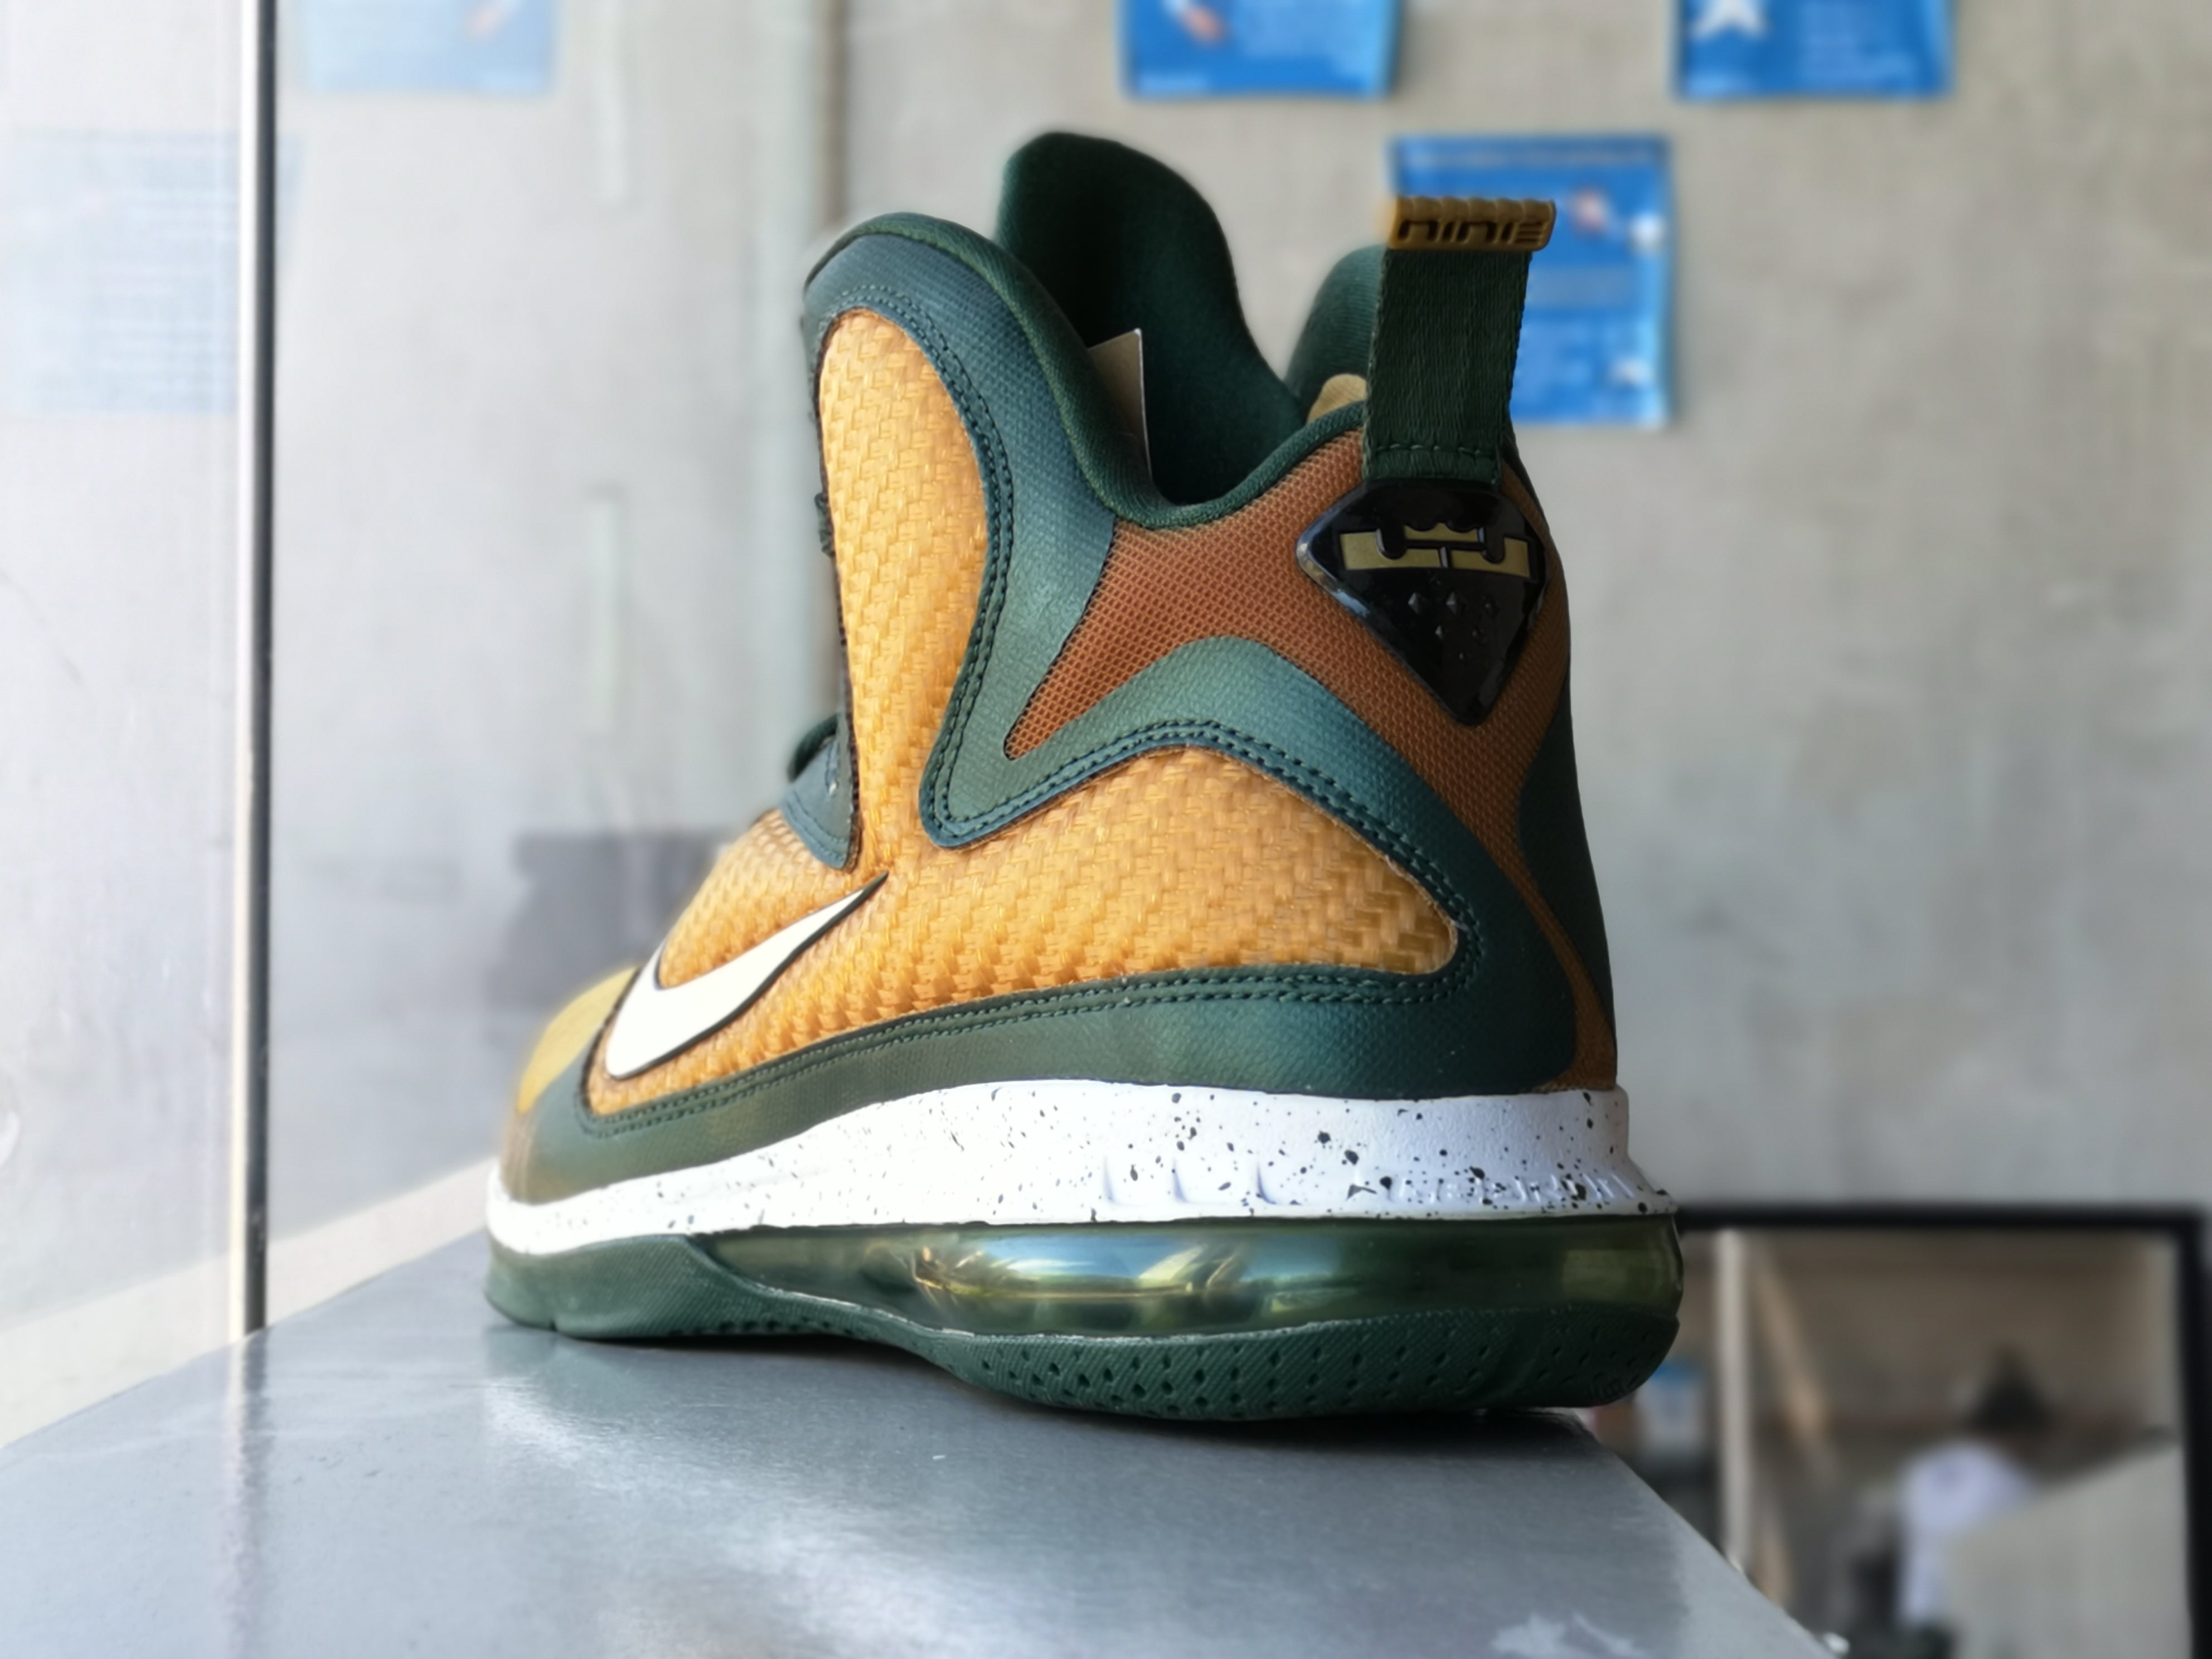 Nike Lebron 9 Svsm Away Promo Sample